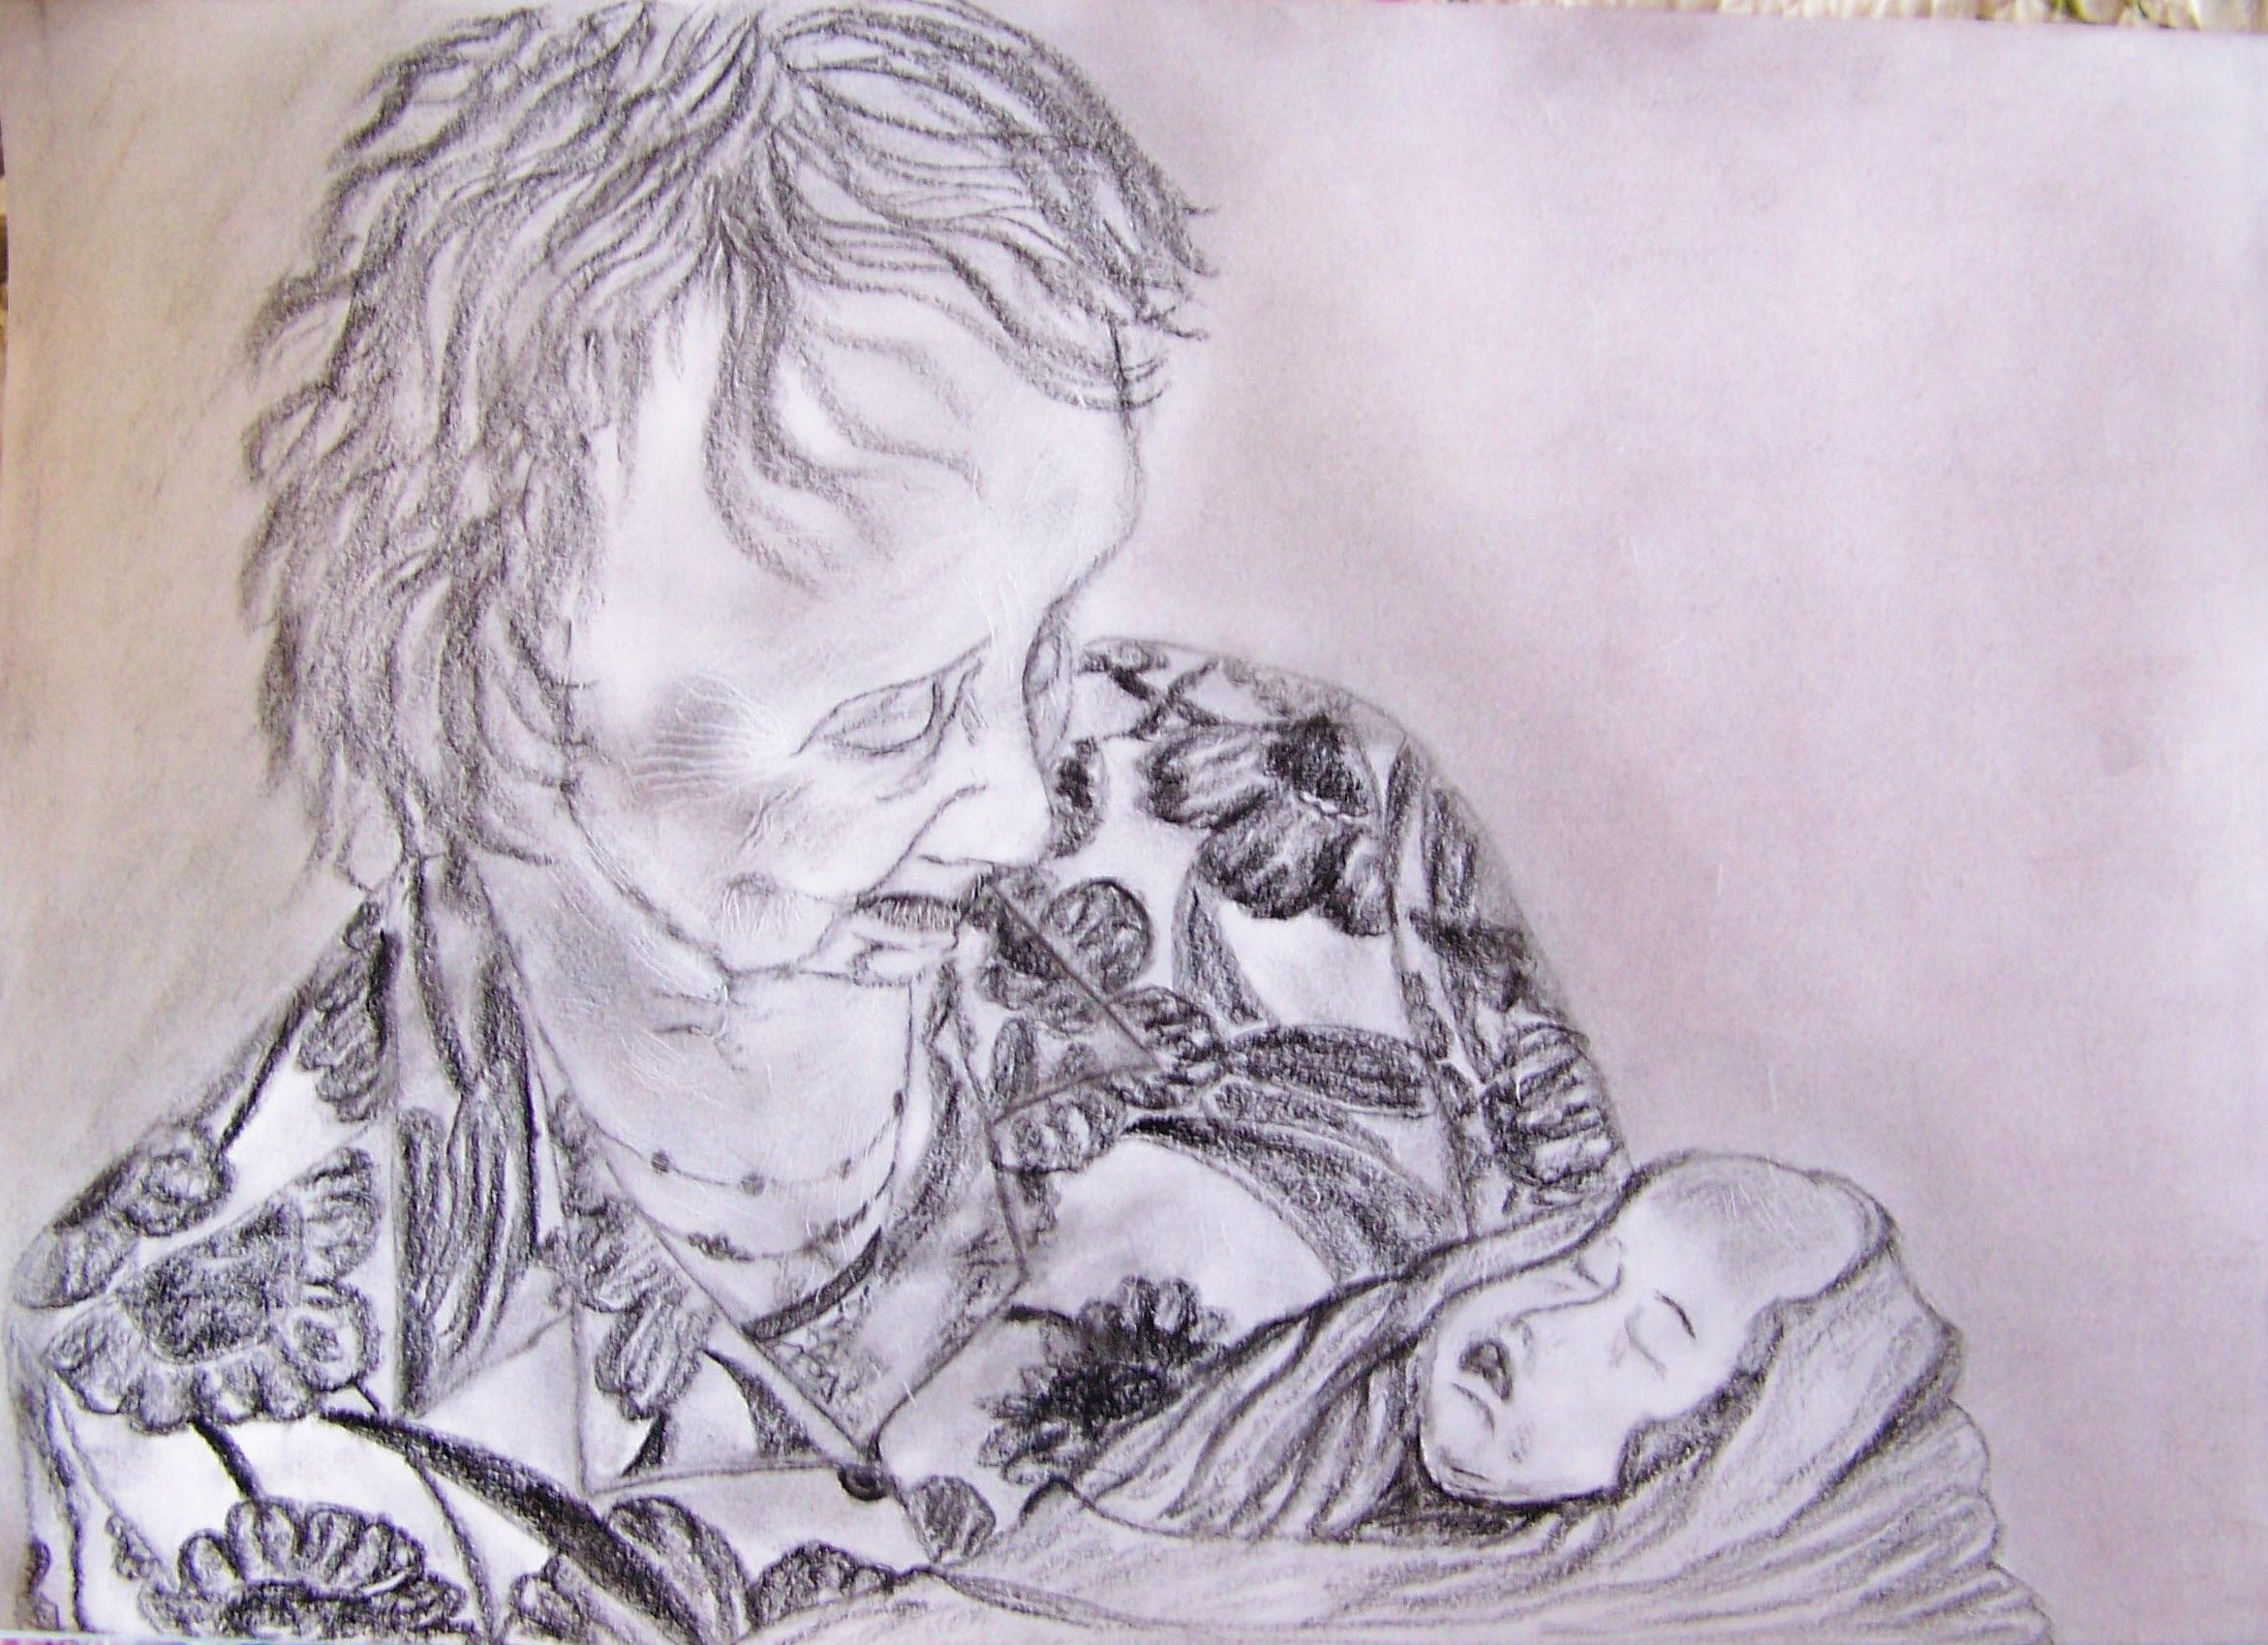 Pencil and charcoal on paper.  My grandmother holding her great granddaughter a day after her birth.  Tender moment.